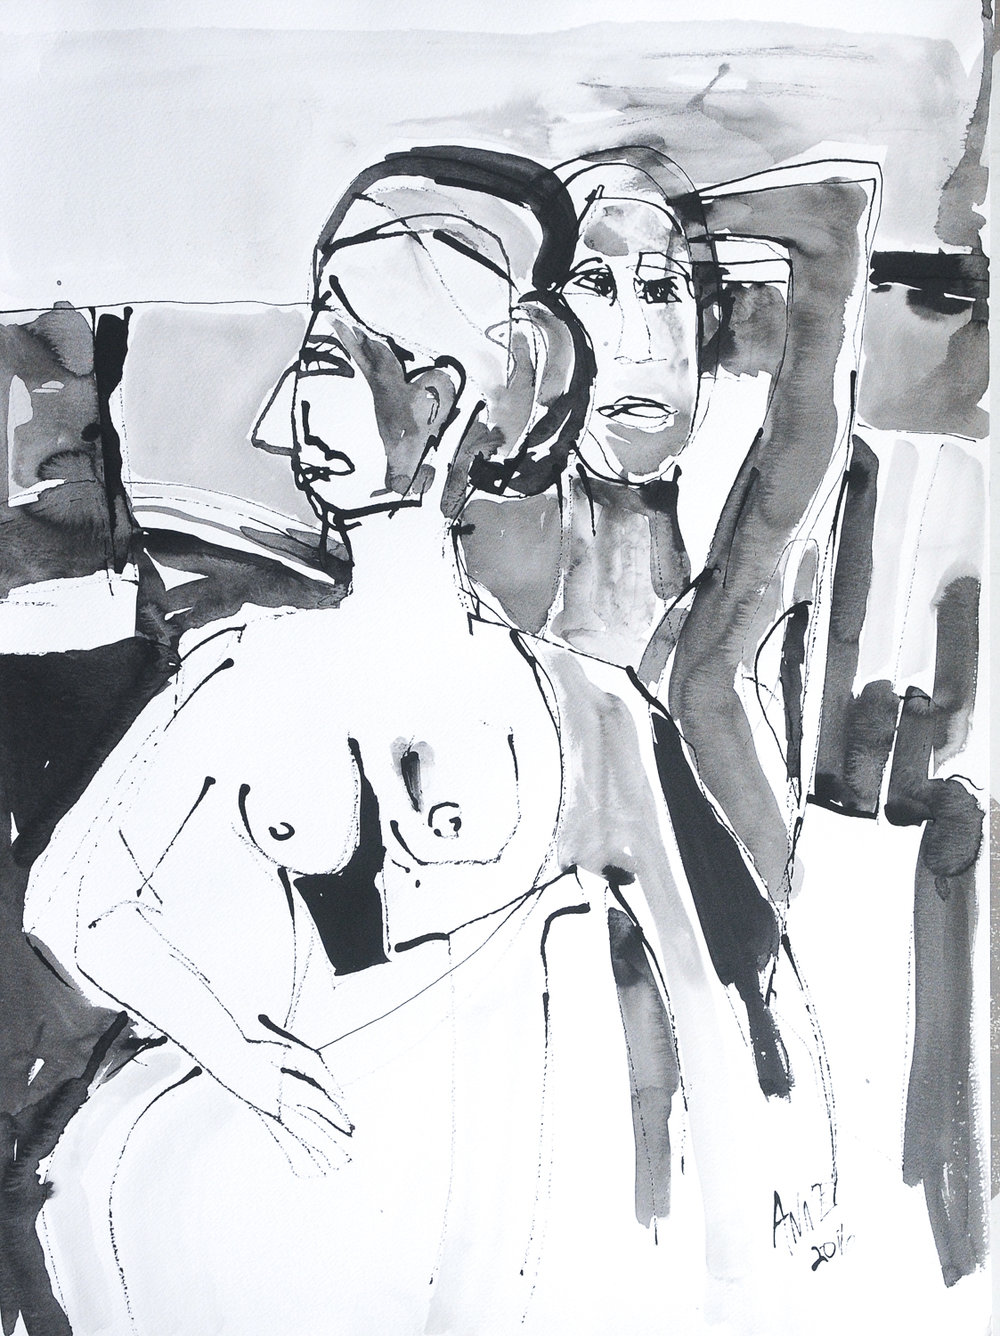 """A Movement of Figures   Ink on Paper   18x24"""""""